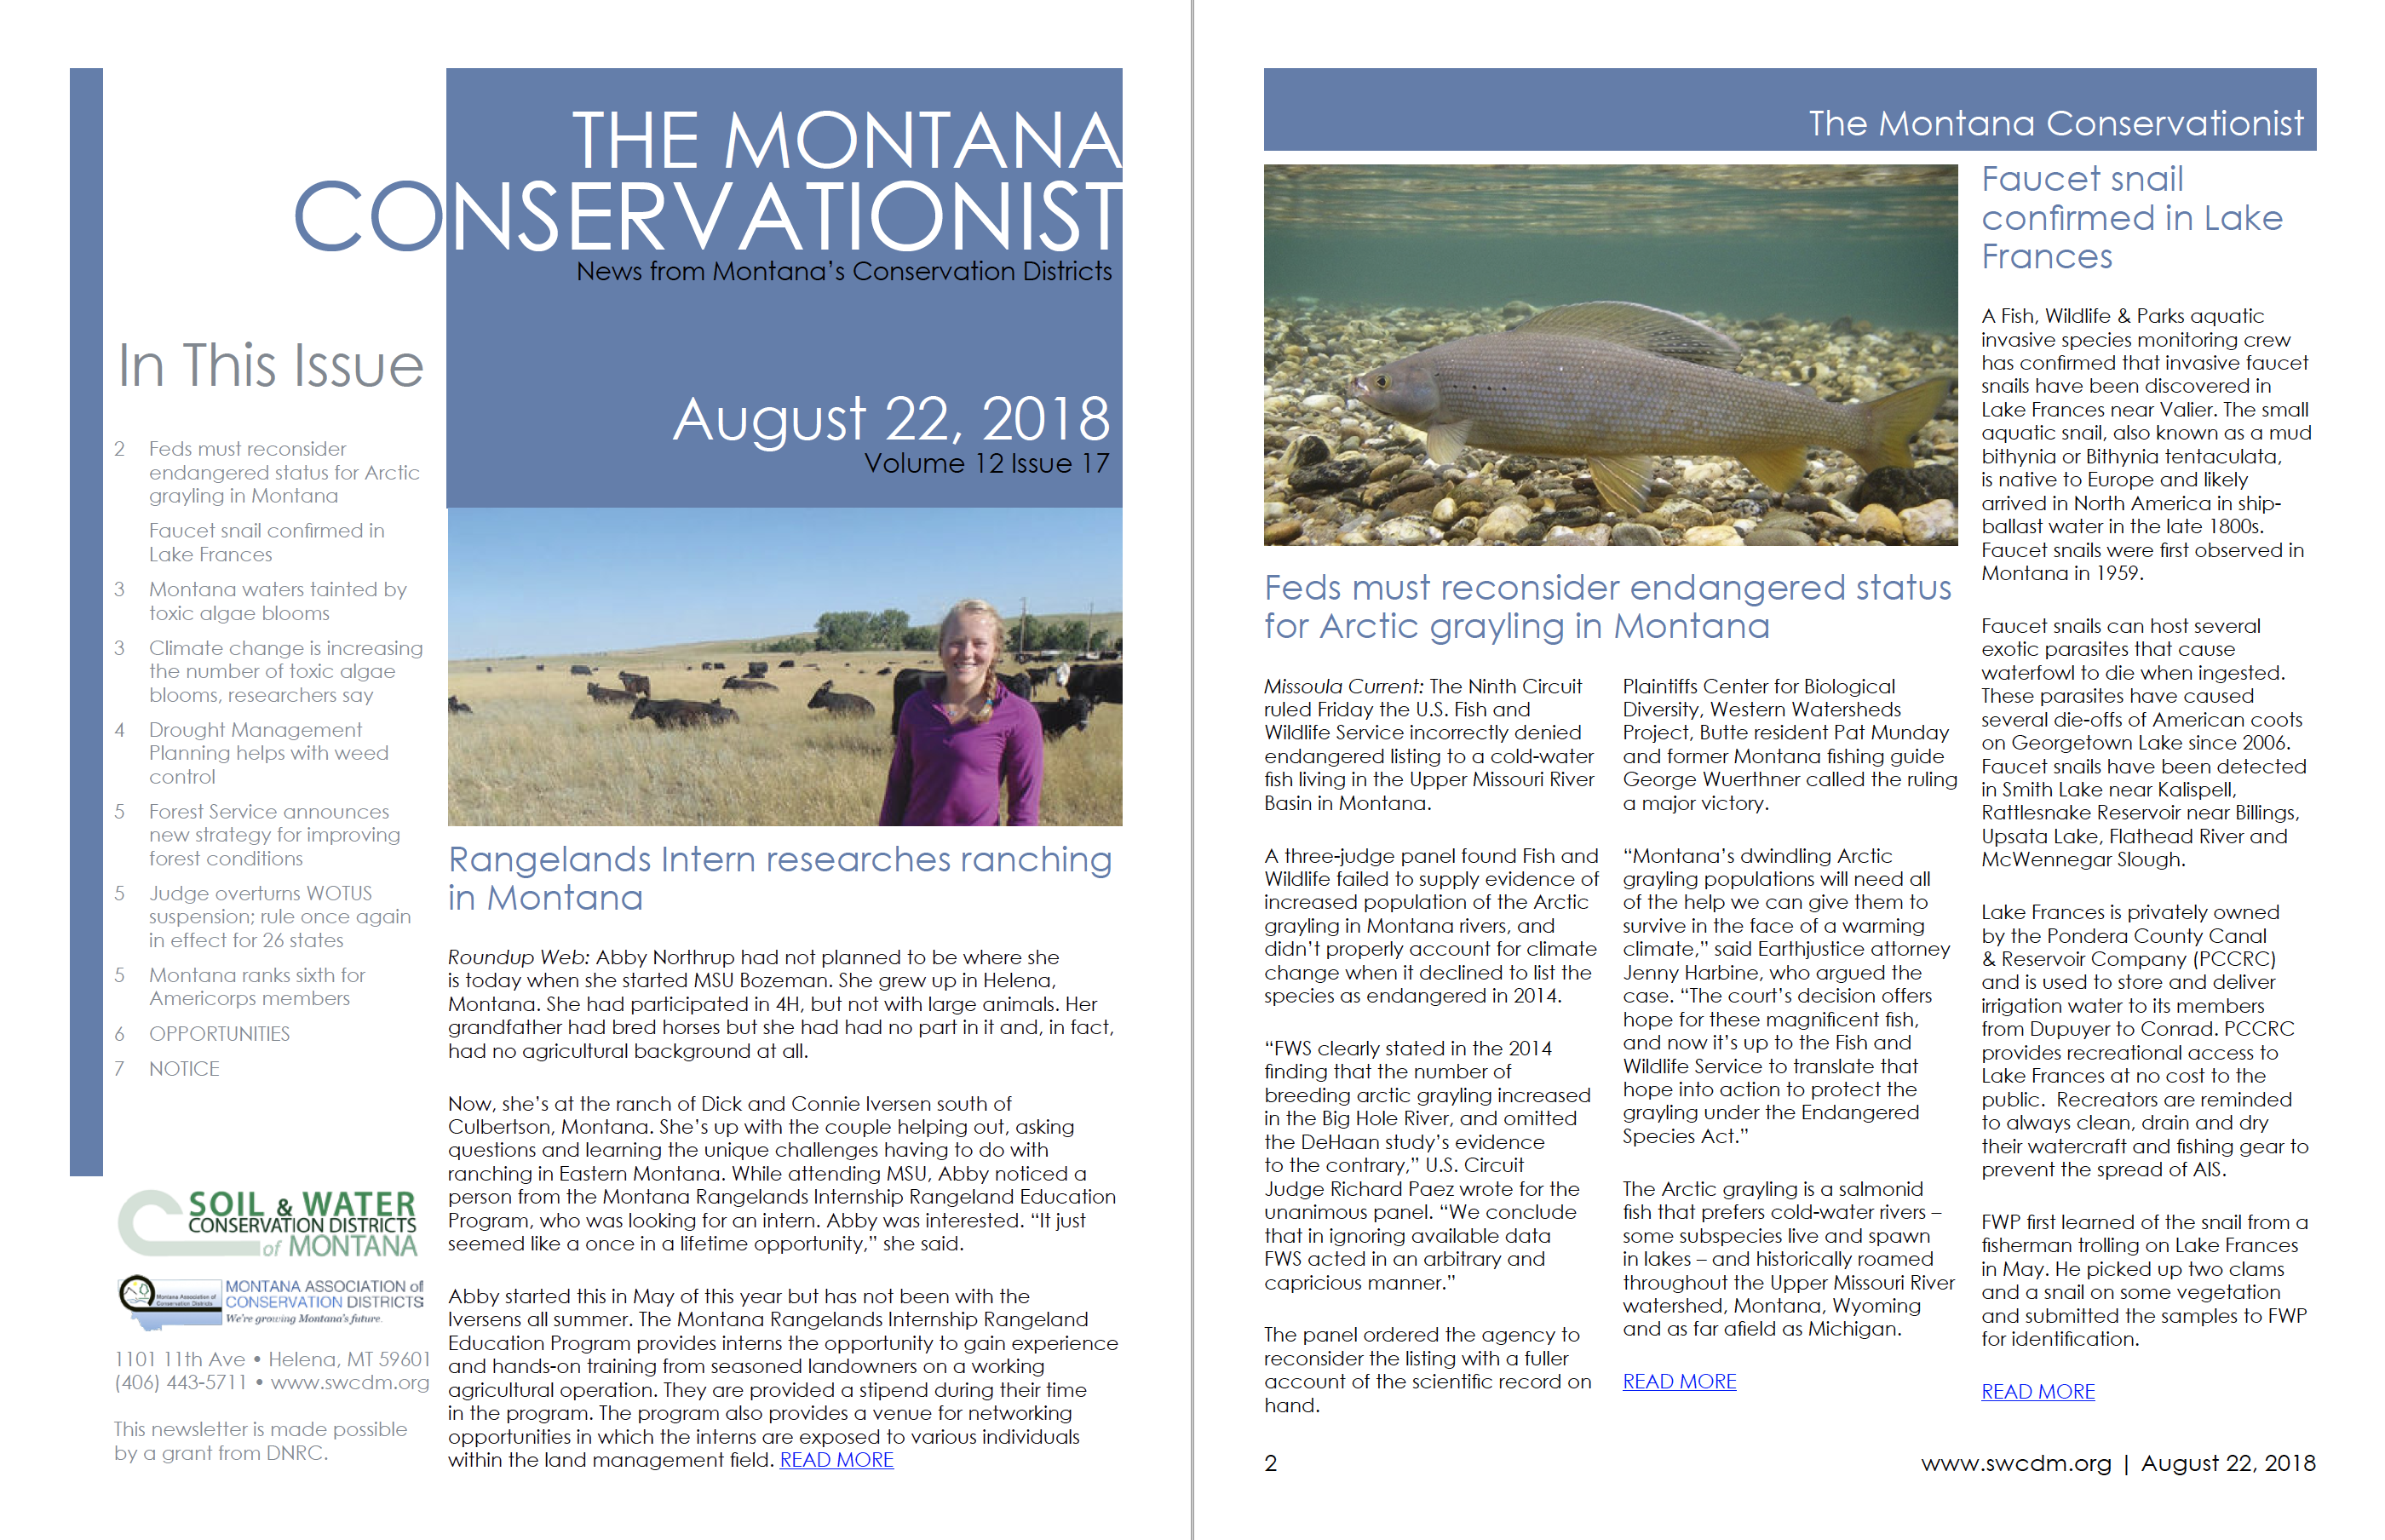 The Montana Conservationist August 22